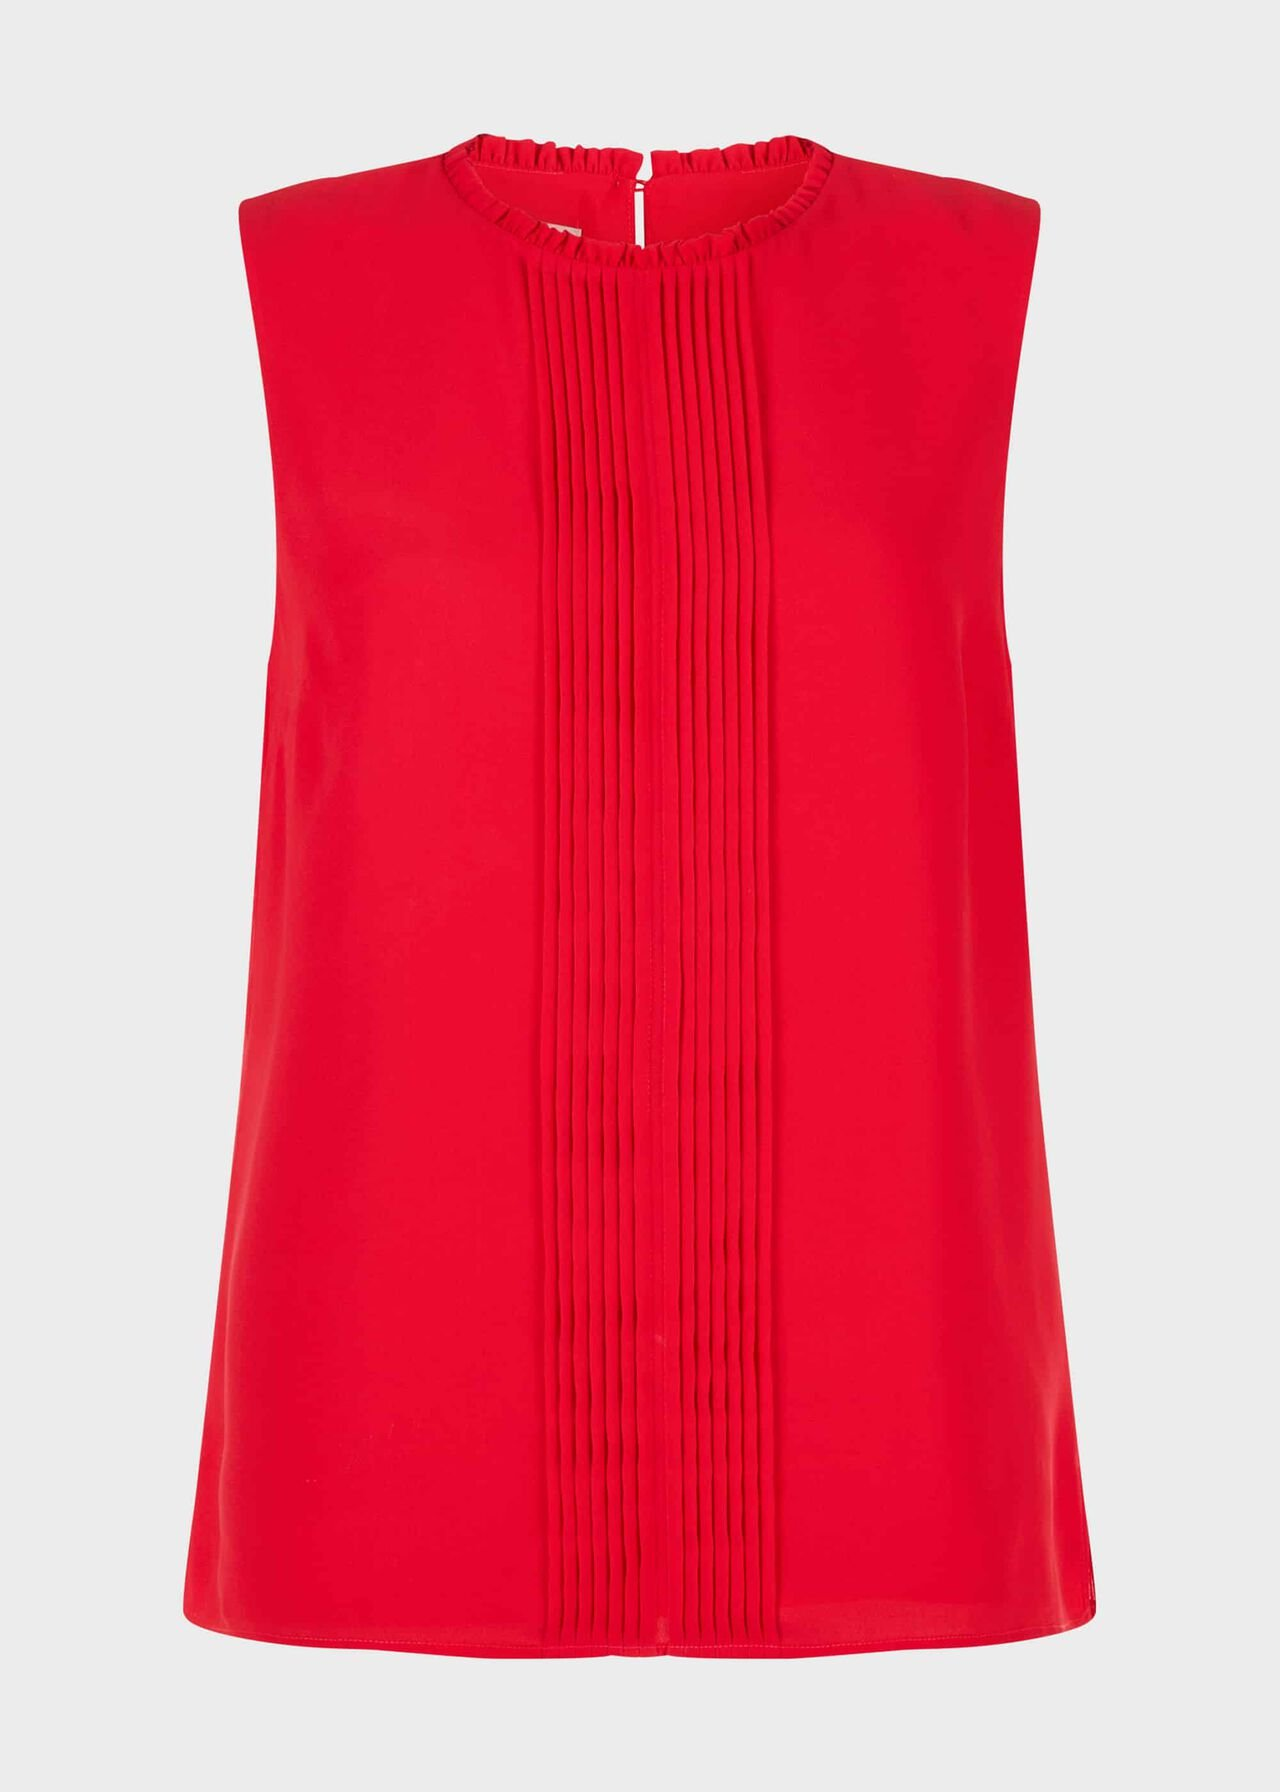 Flora Pleated Top Red